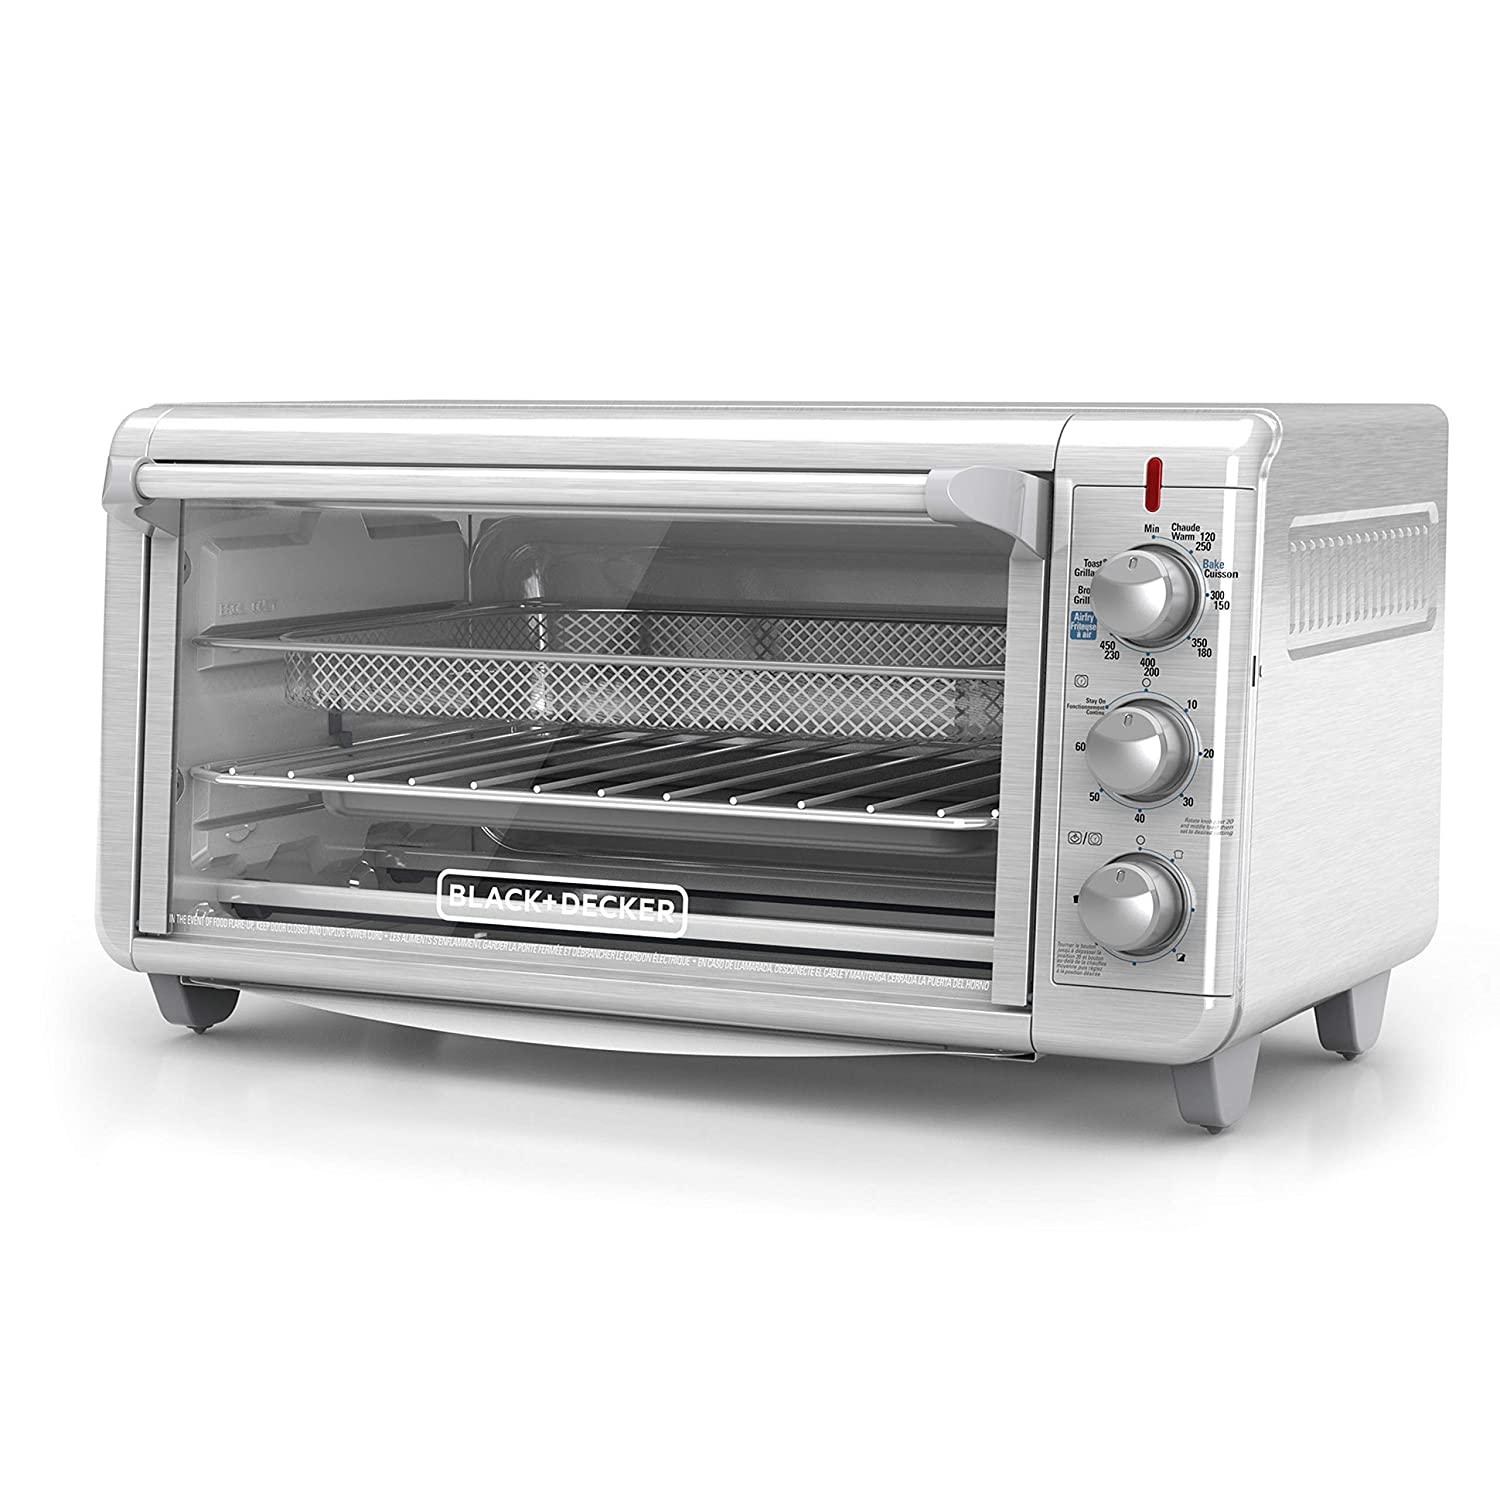 "BLACK+DECKER TO3265XSSD Extra Wide Crisp 'N Bake Air Fry Toaster Oven, Fits 9"" x 13"" Pan, Silver (Renewed)"